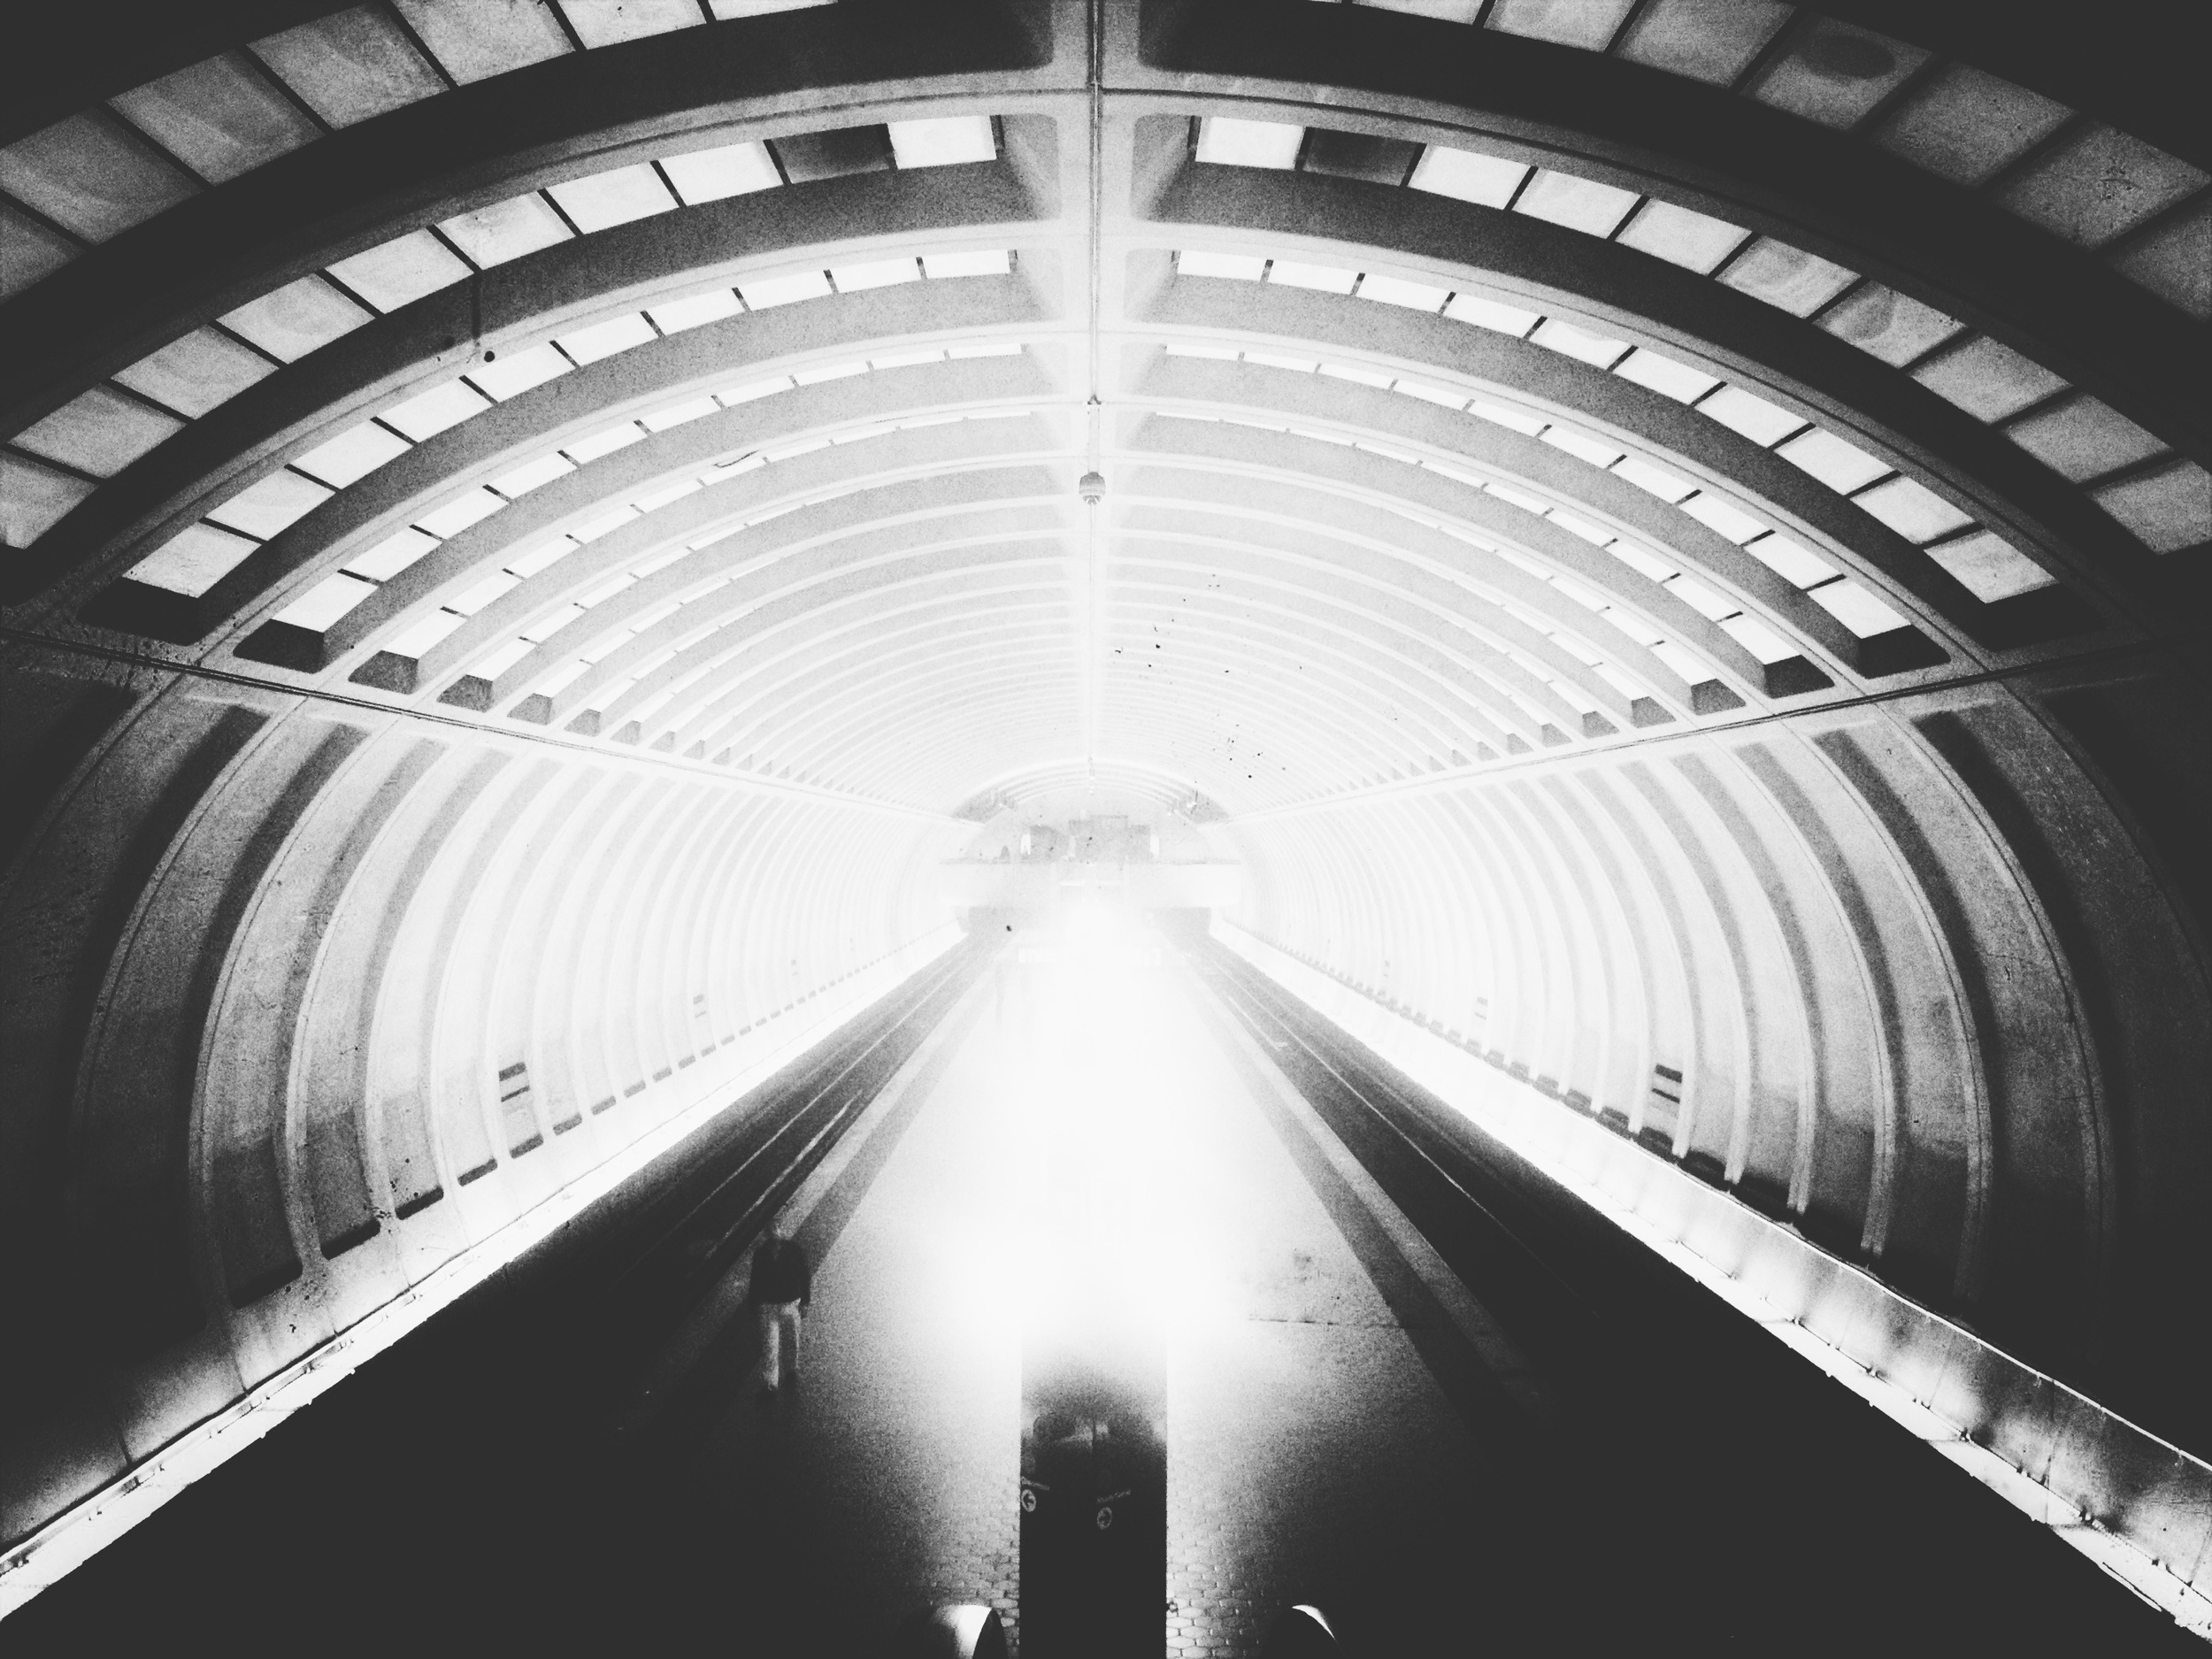 Continued exploration of the DC Metro.